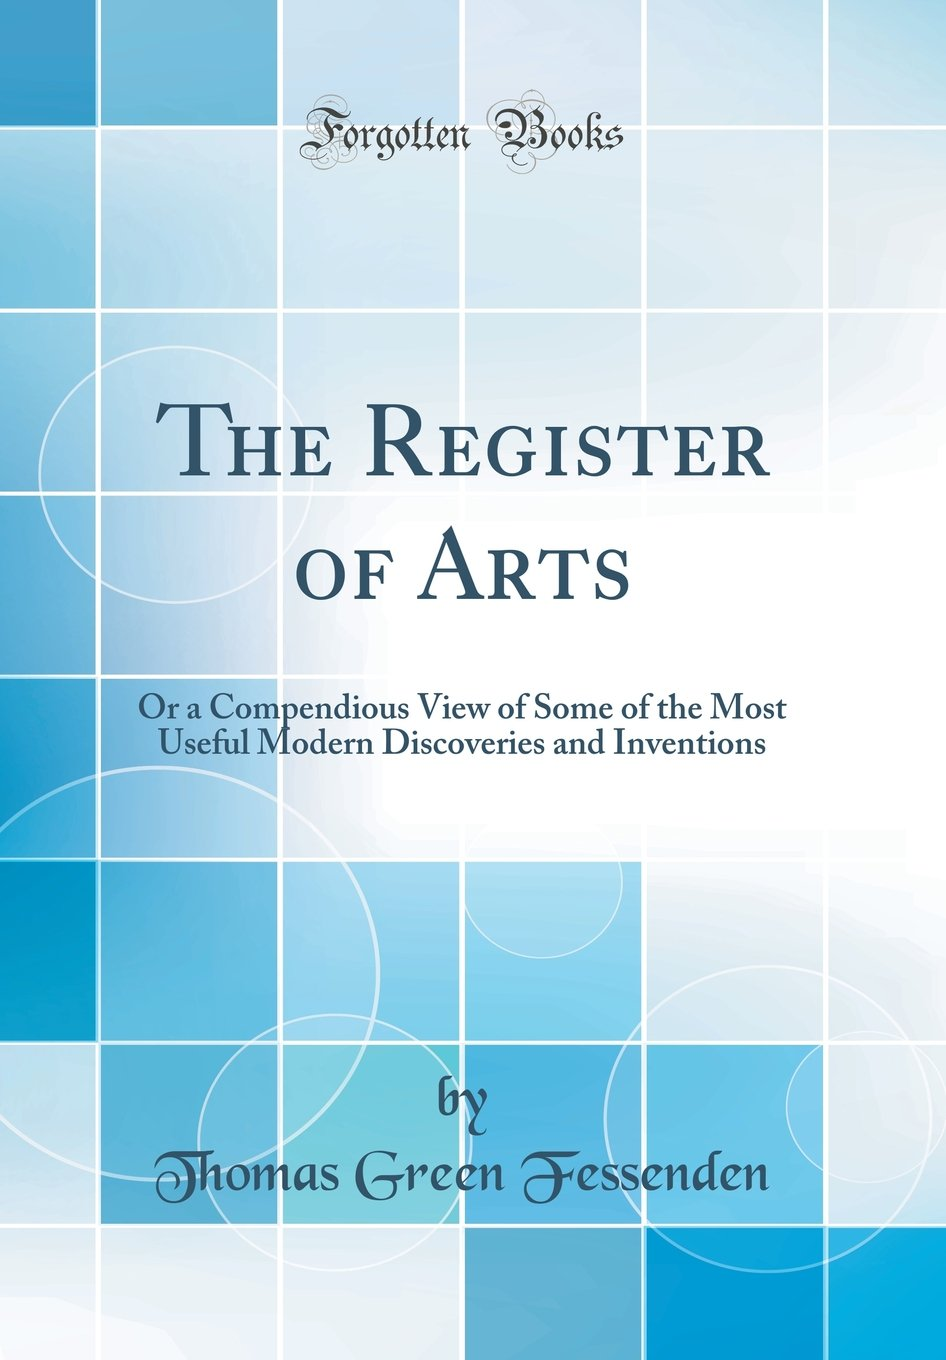 The Register of Arts: Or a Compendious View of Some of the Most Useful Modern Discoveries and Inventions (Classic Reprint) ebook